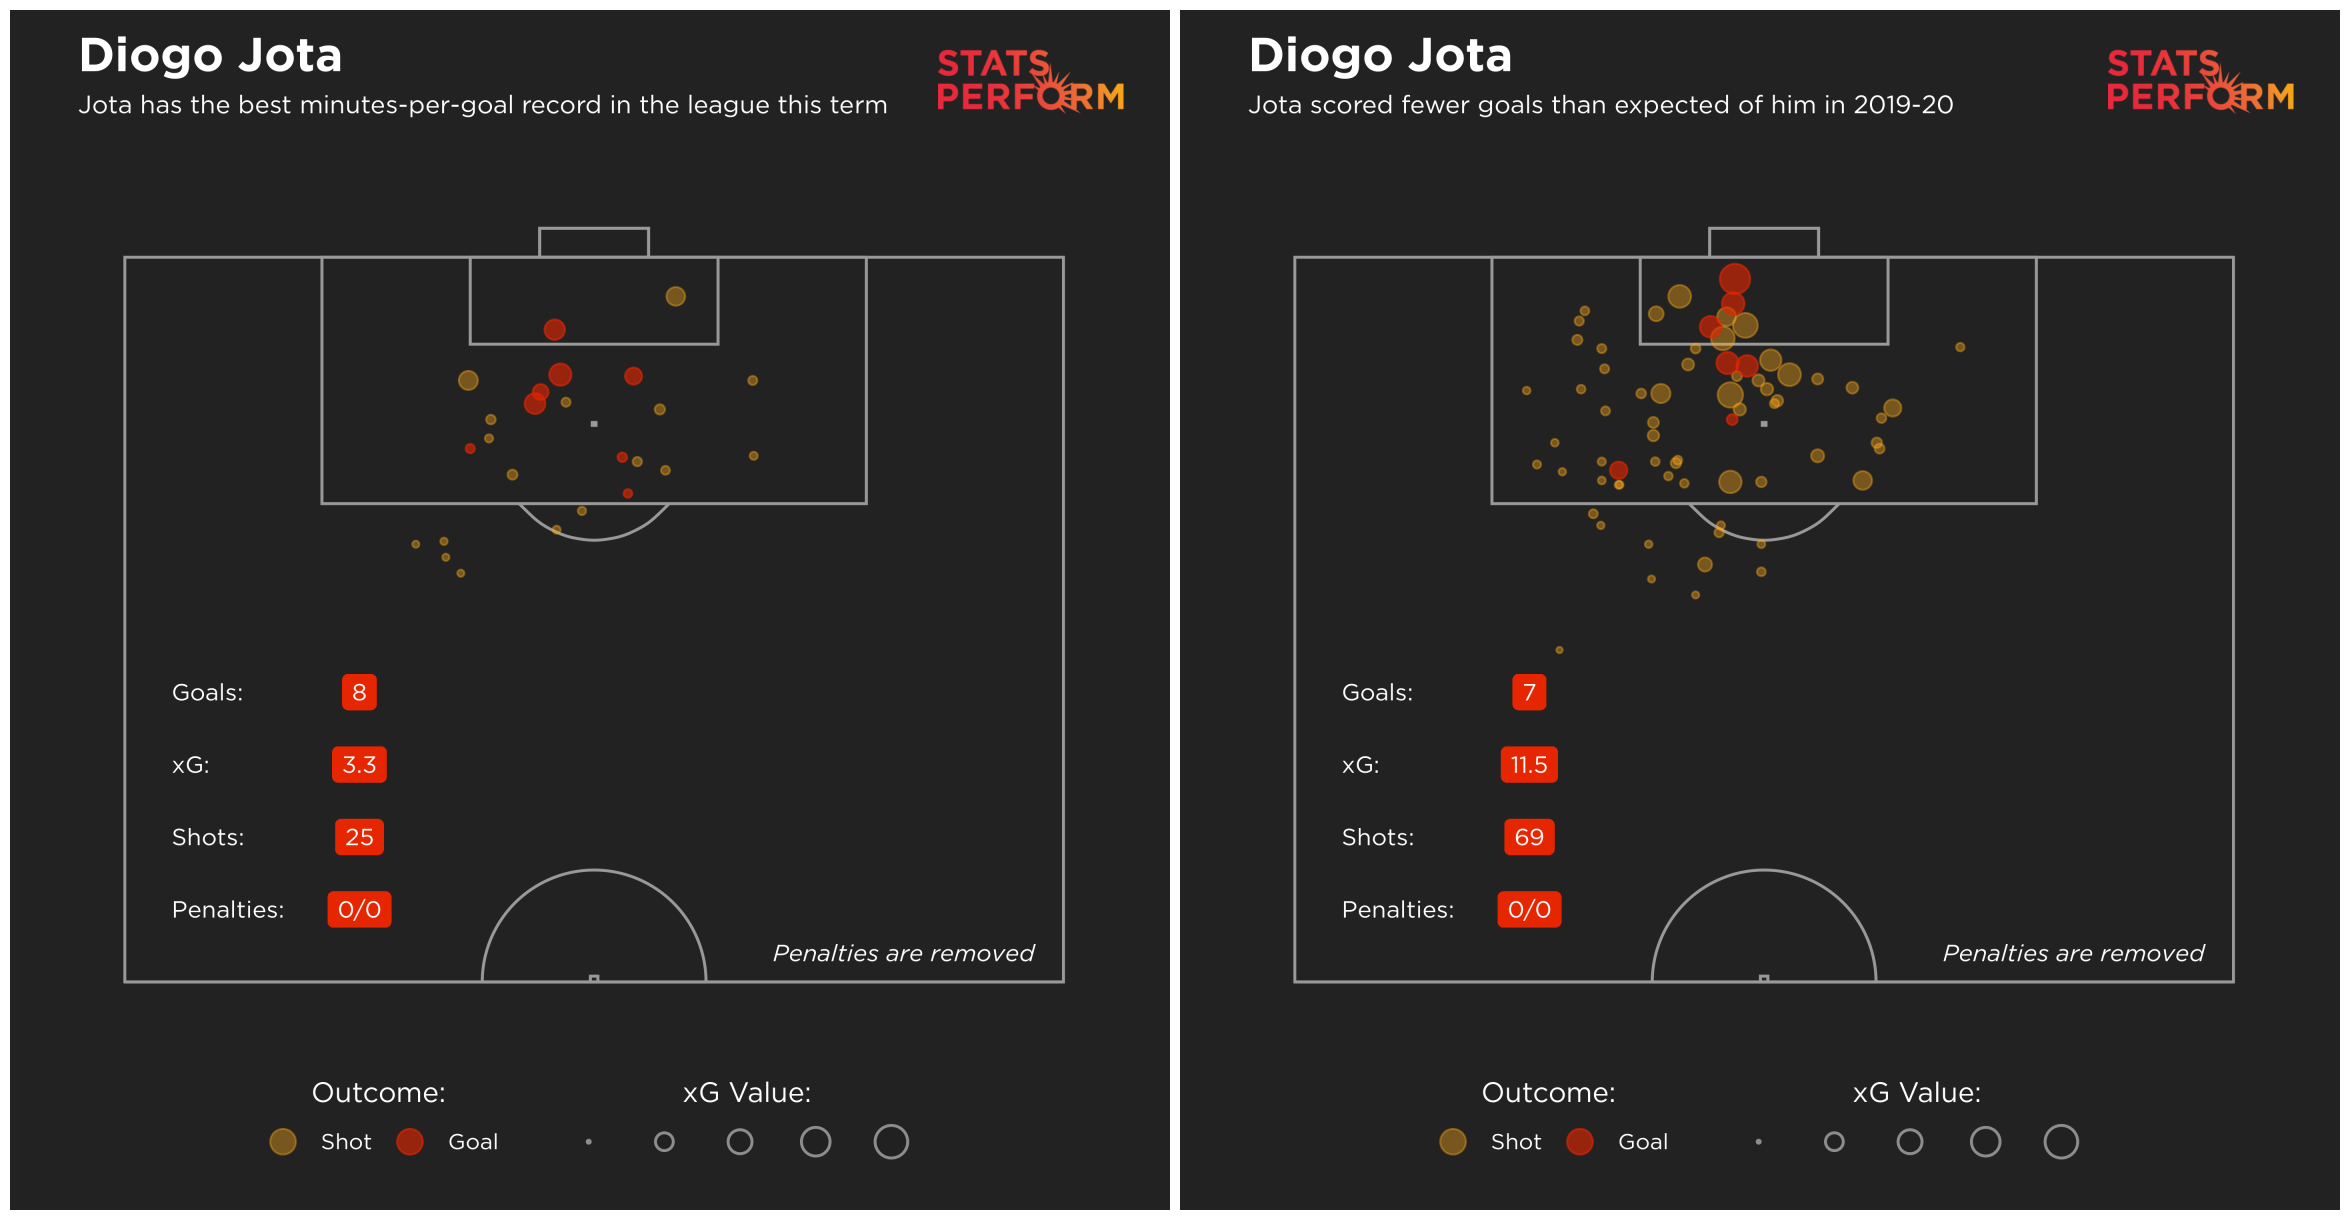 Diogo Jota's goalscoring habits this term are rather different to in 2019-20